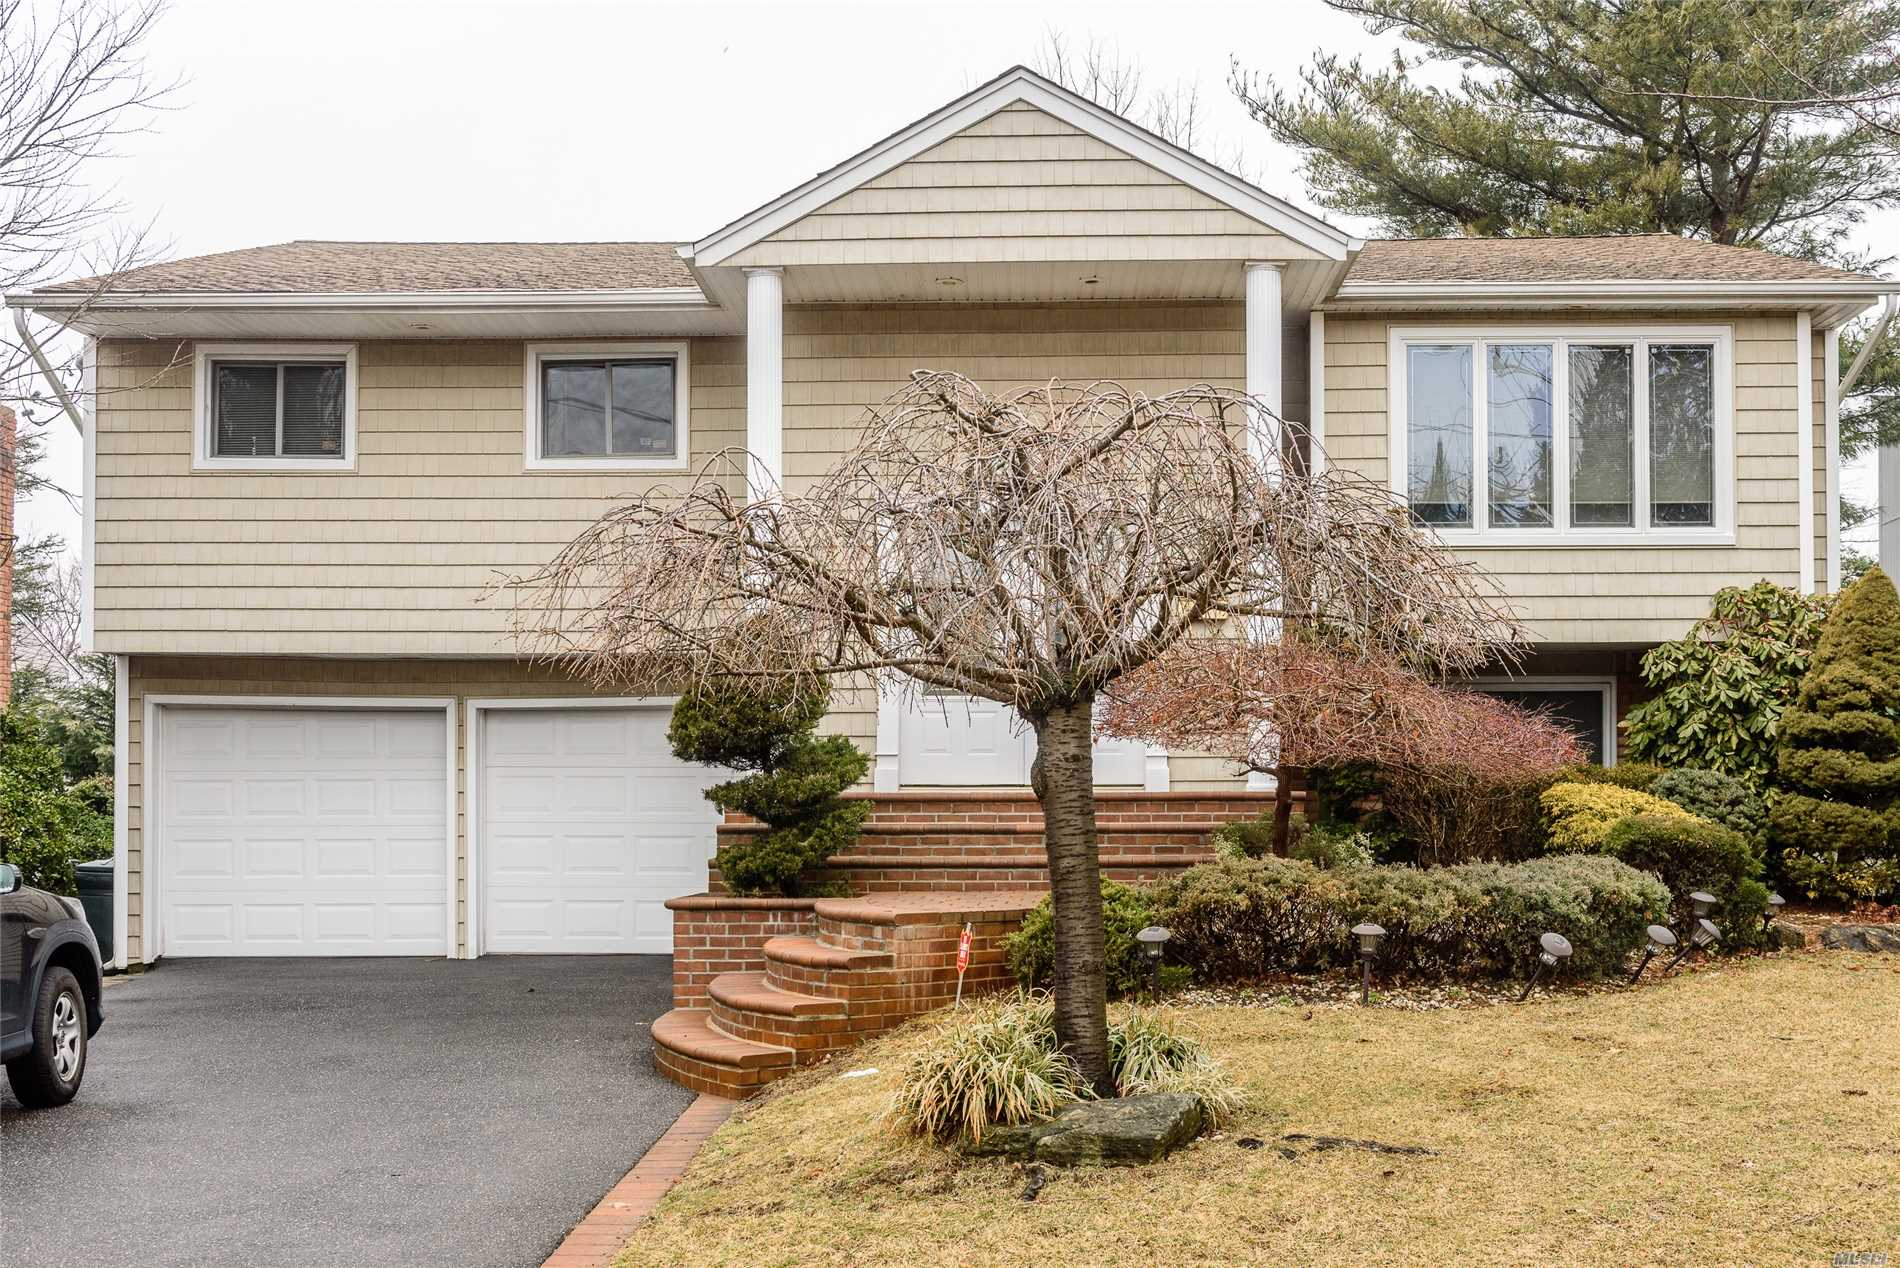 Desirable Bosa Nova Wideline Hi-Ranch--Dual Staircase--Renovated Exterior--Pavers/Sealed Drive/Siding/Large Upper Deck W/Awning --Great Backyard Updated Appliances, Double Entry Door, Oak Bannister, Replaced Roof & Siding, Slomin's Security System To Station, Oil Tank Almost New!, Replacement Windows, Central Air & Boiler Approx. 7 Yrs. New! Spacious & Inviting Home!